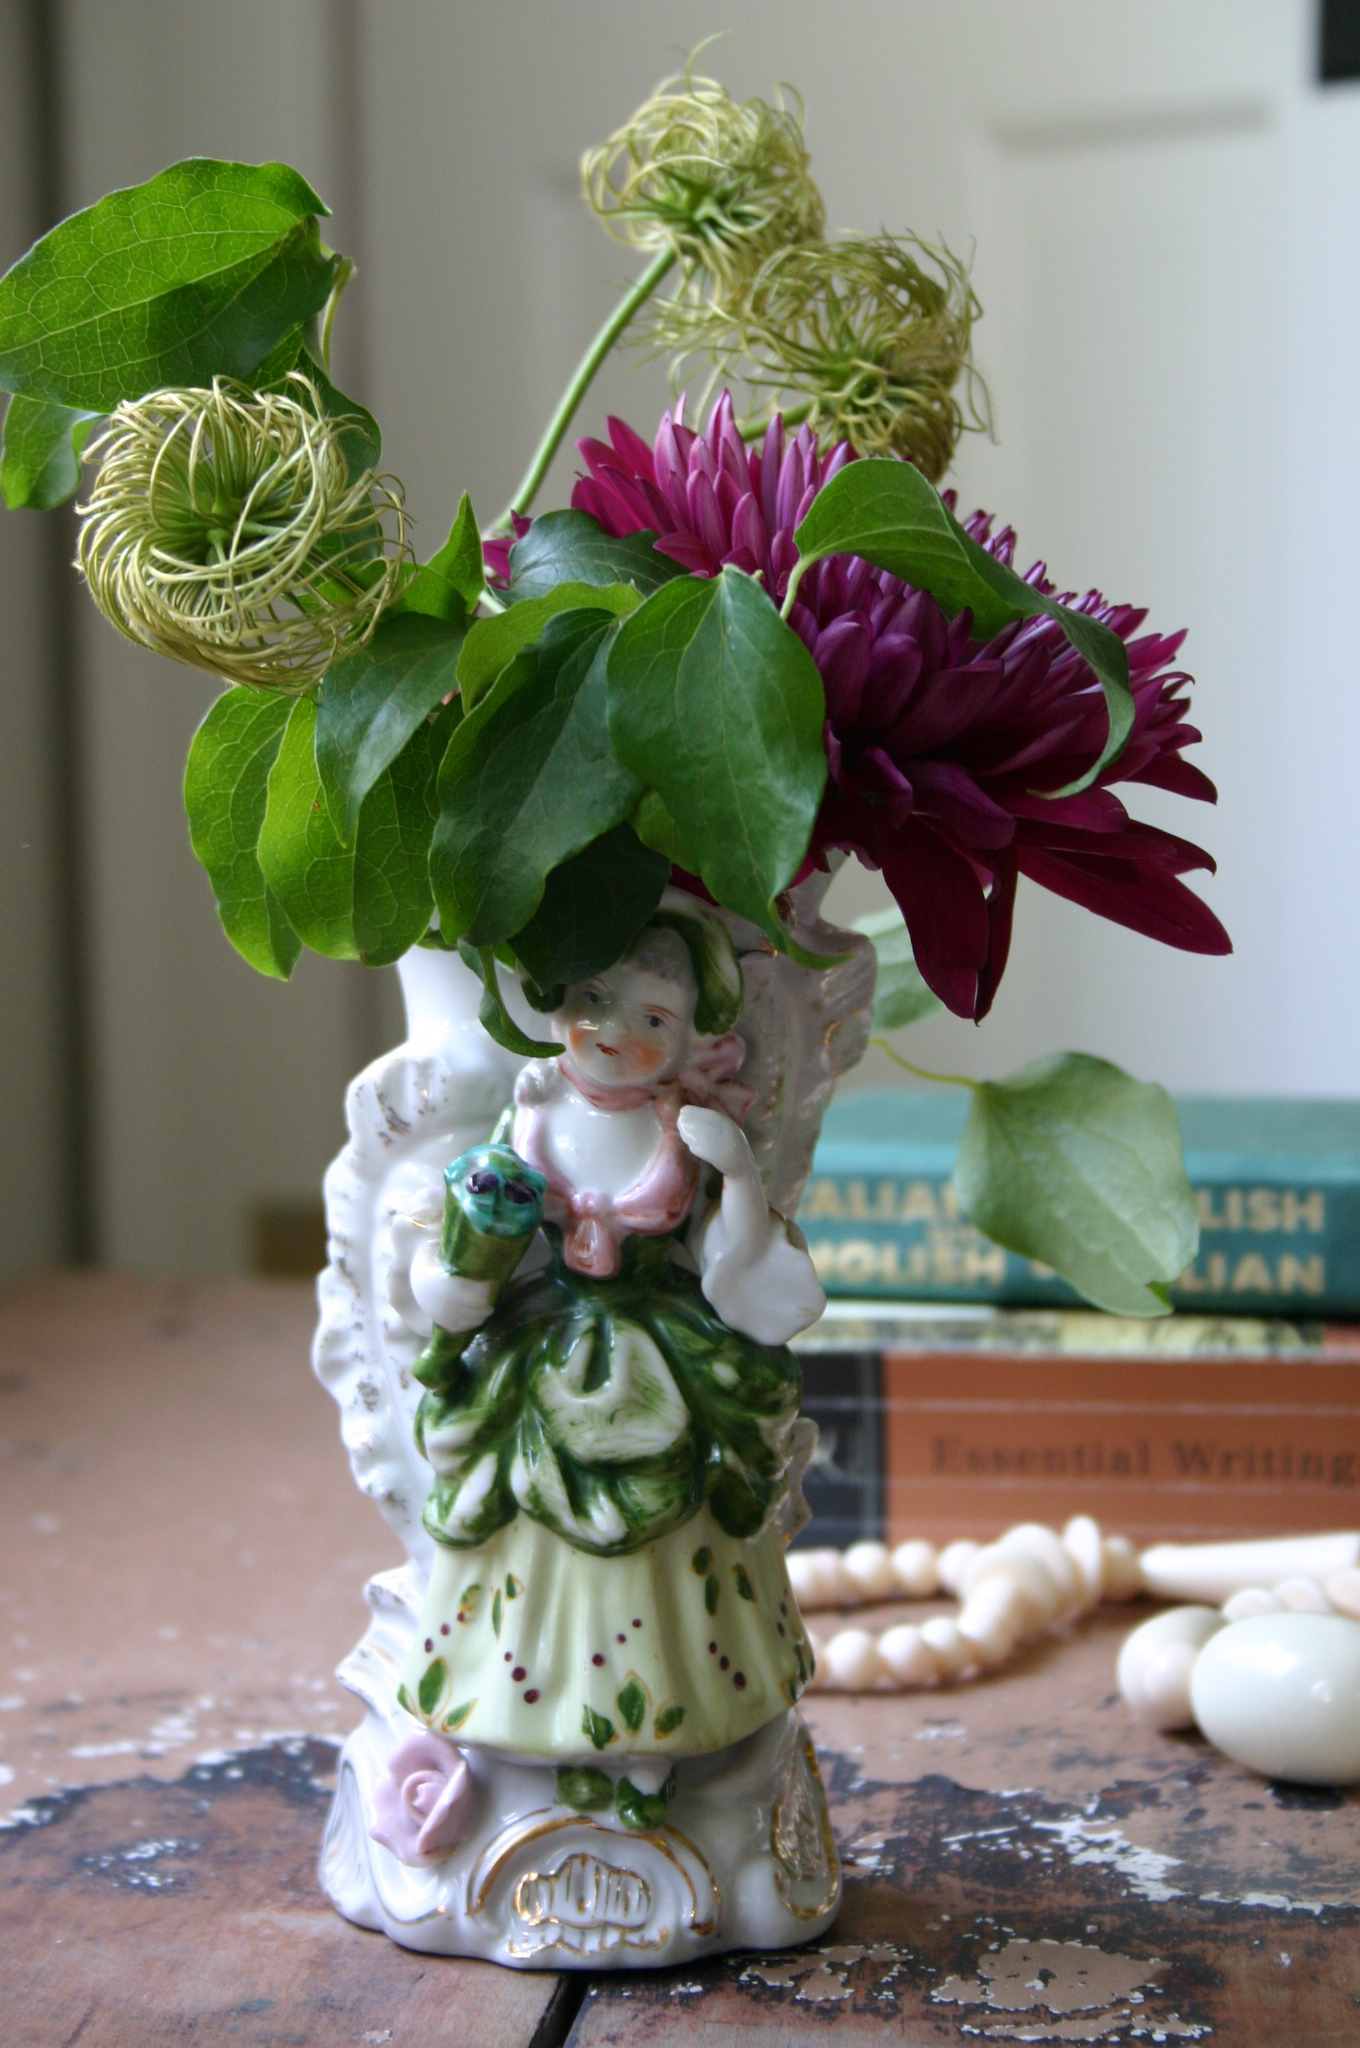 When making this simple arrangement this morning, I included the seed head from a clematis vine I have growing in my front yard.